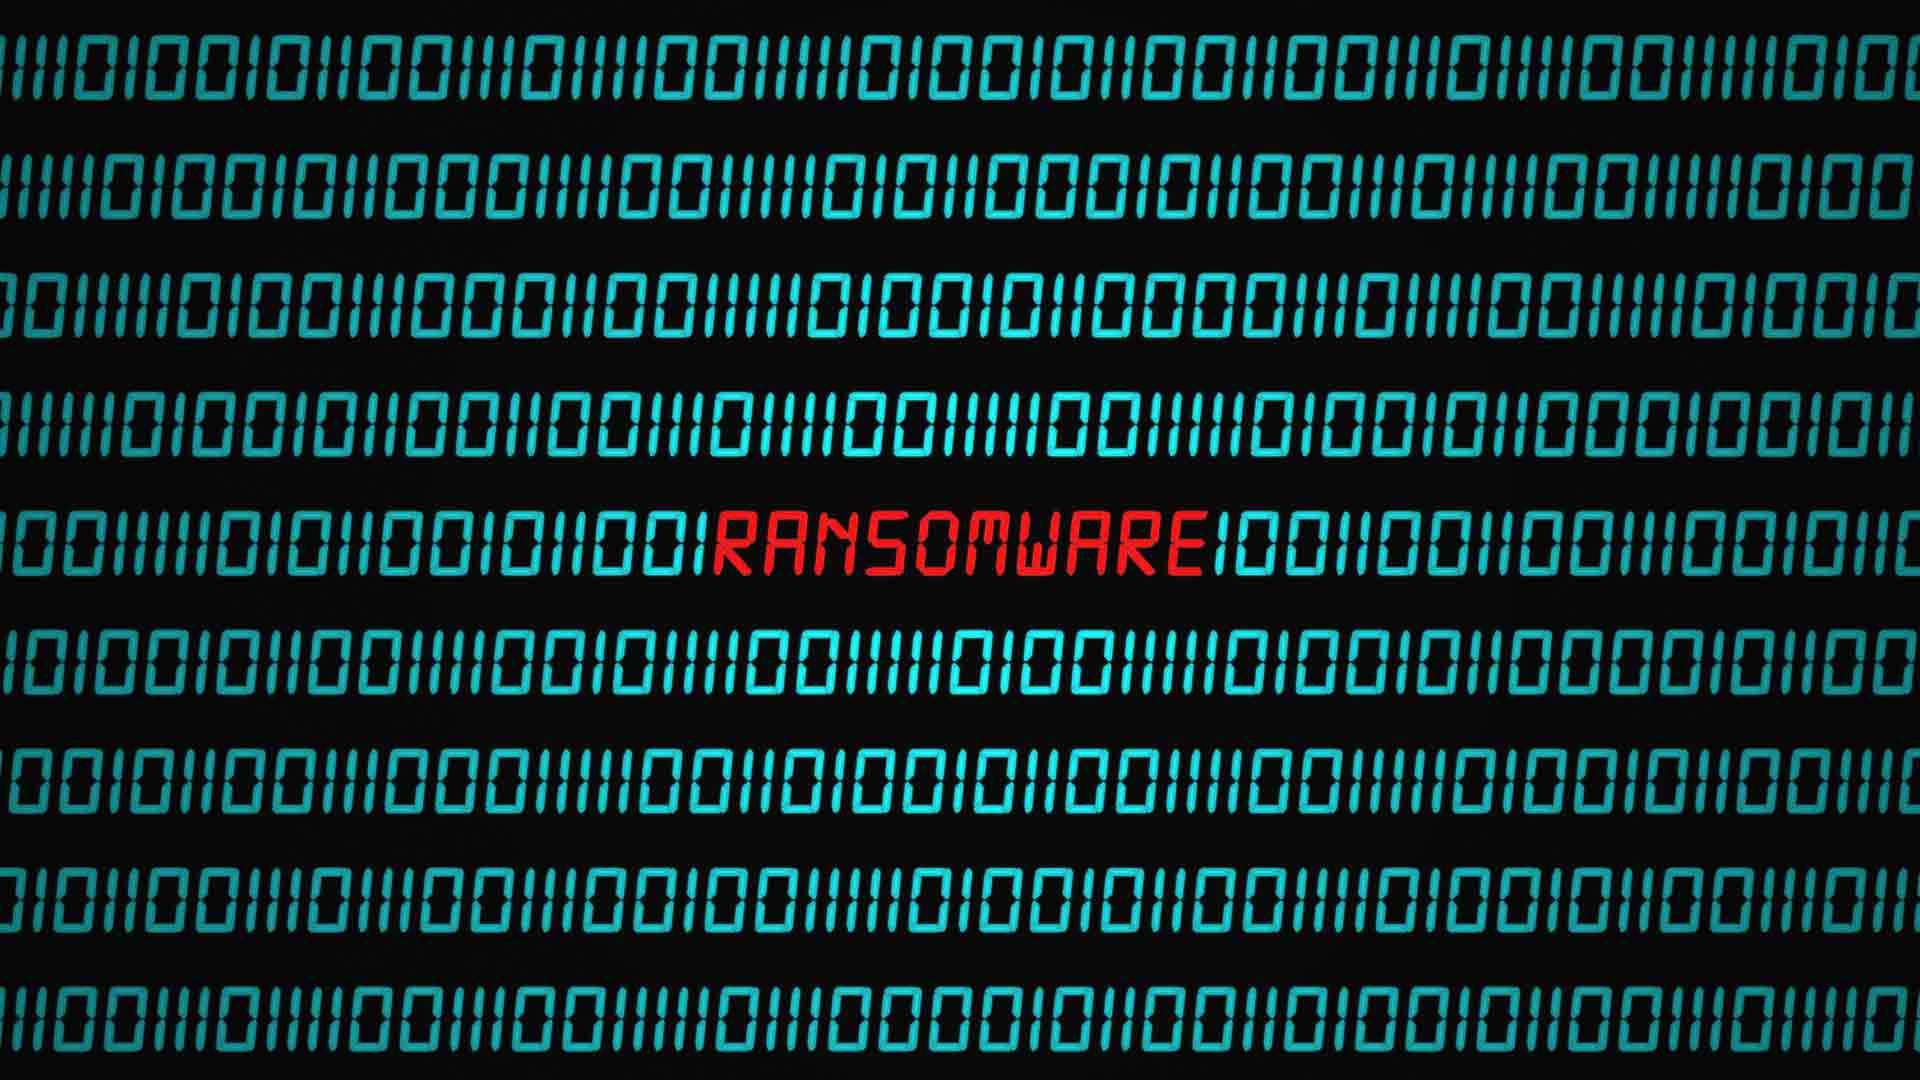 4 Tips for Protecting Your Small Business from a Ransomware Attack